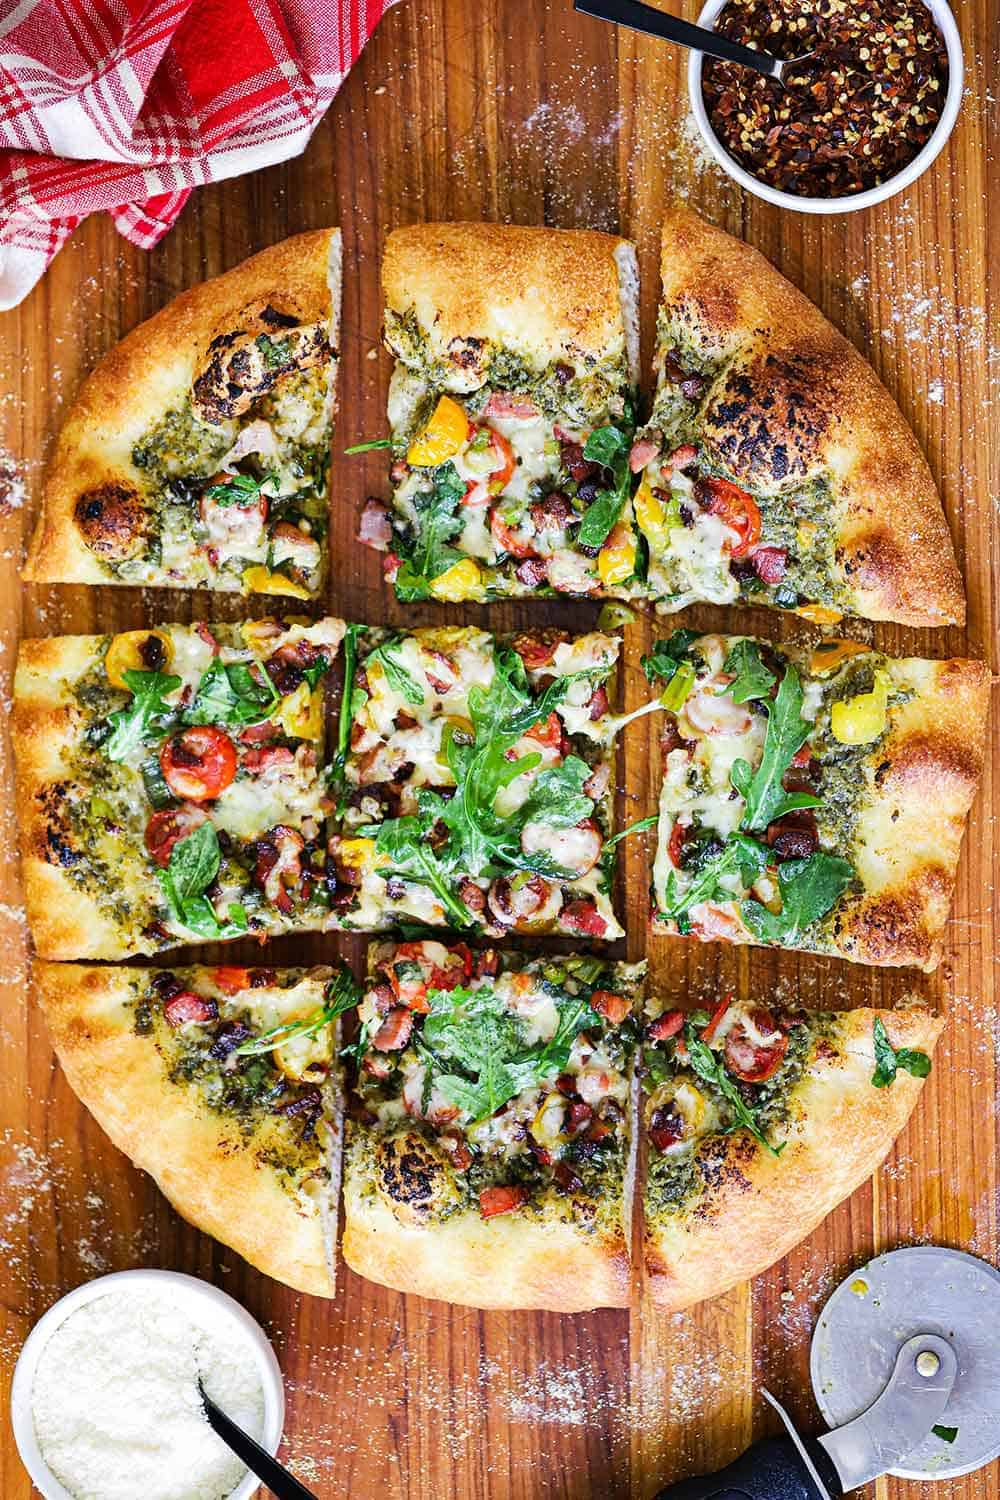 Pesto Pizza with Pancetta, Tomatoes and Arugula